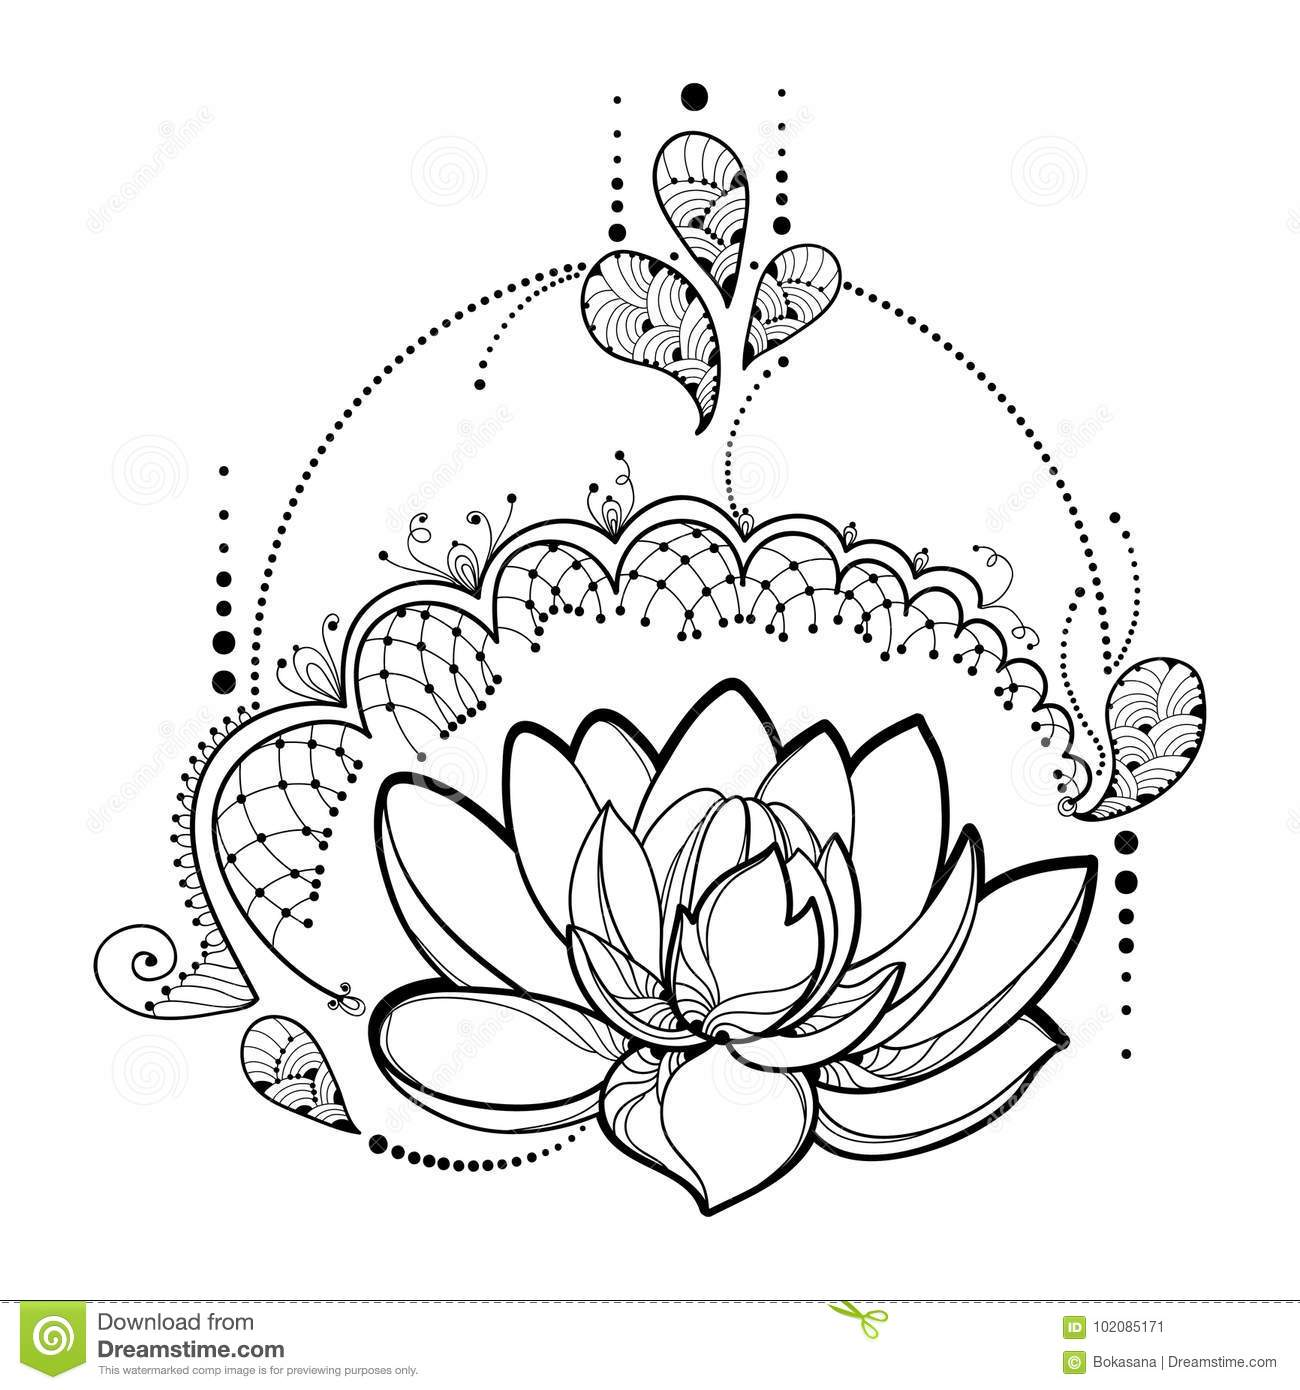 Vector drawing with outline lotus flower decorative lace and swirls vector drawing with outline lotus flower decorative lace and swirls in black izmirmasajfo